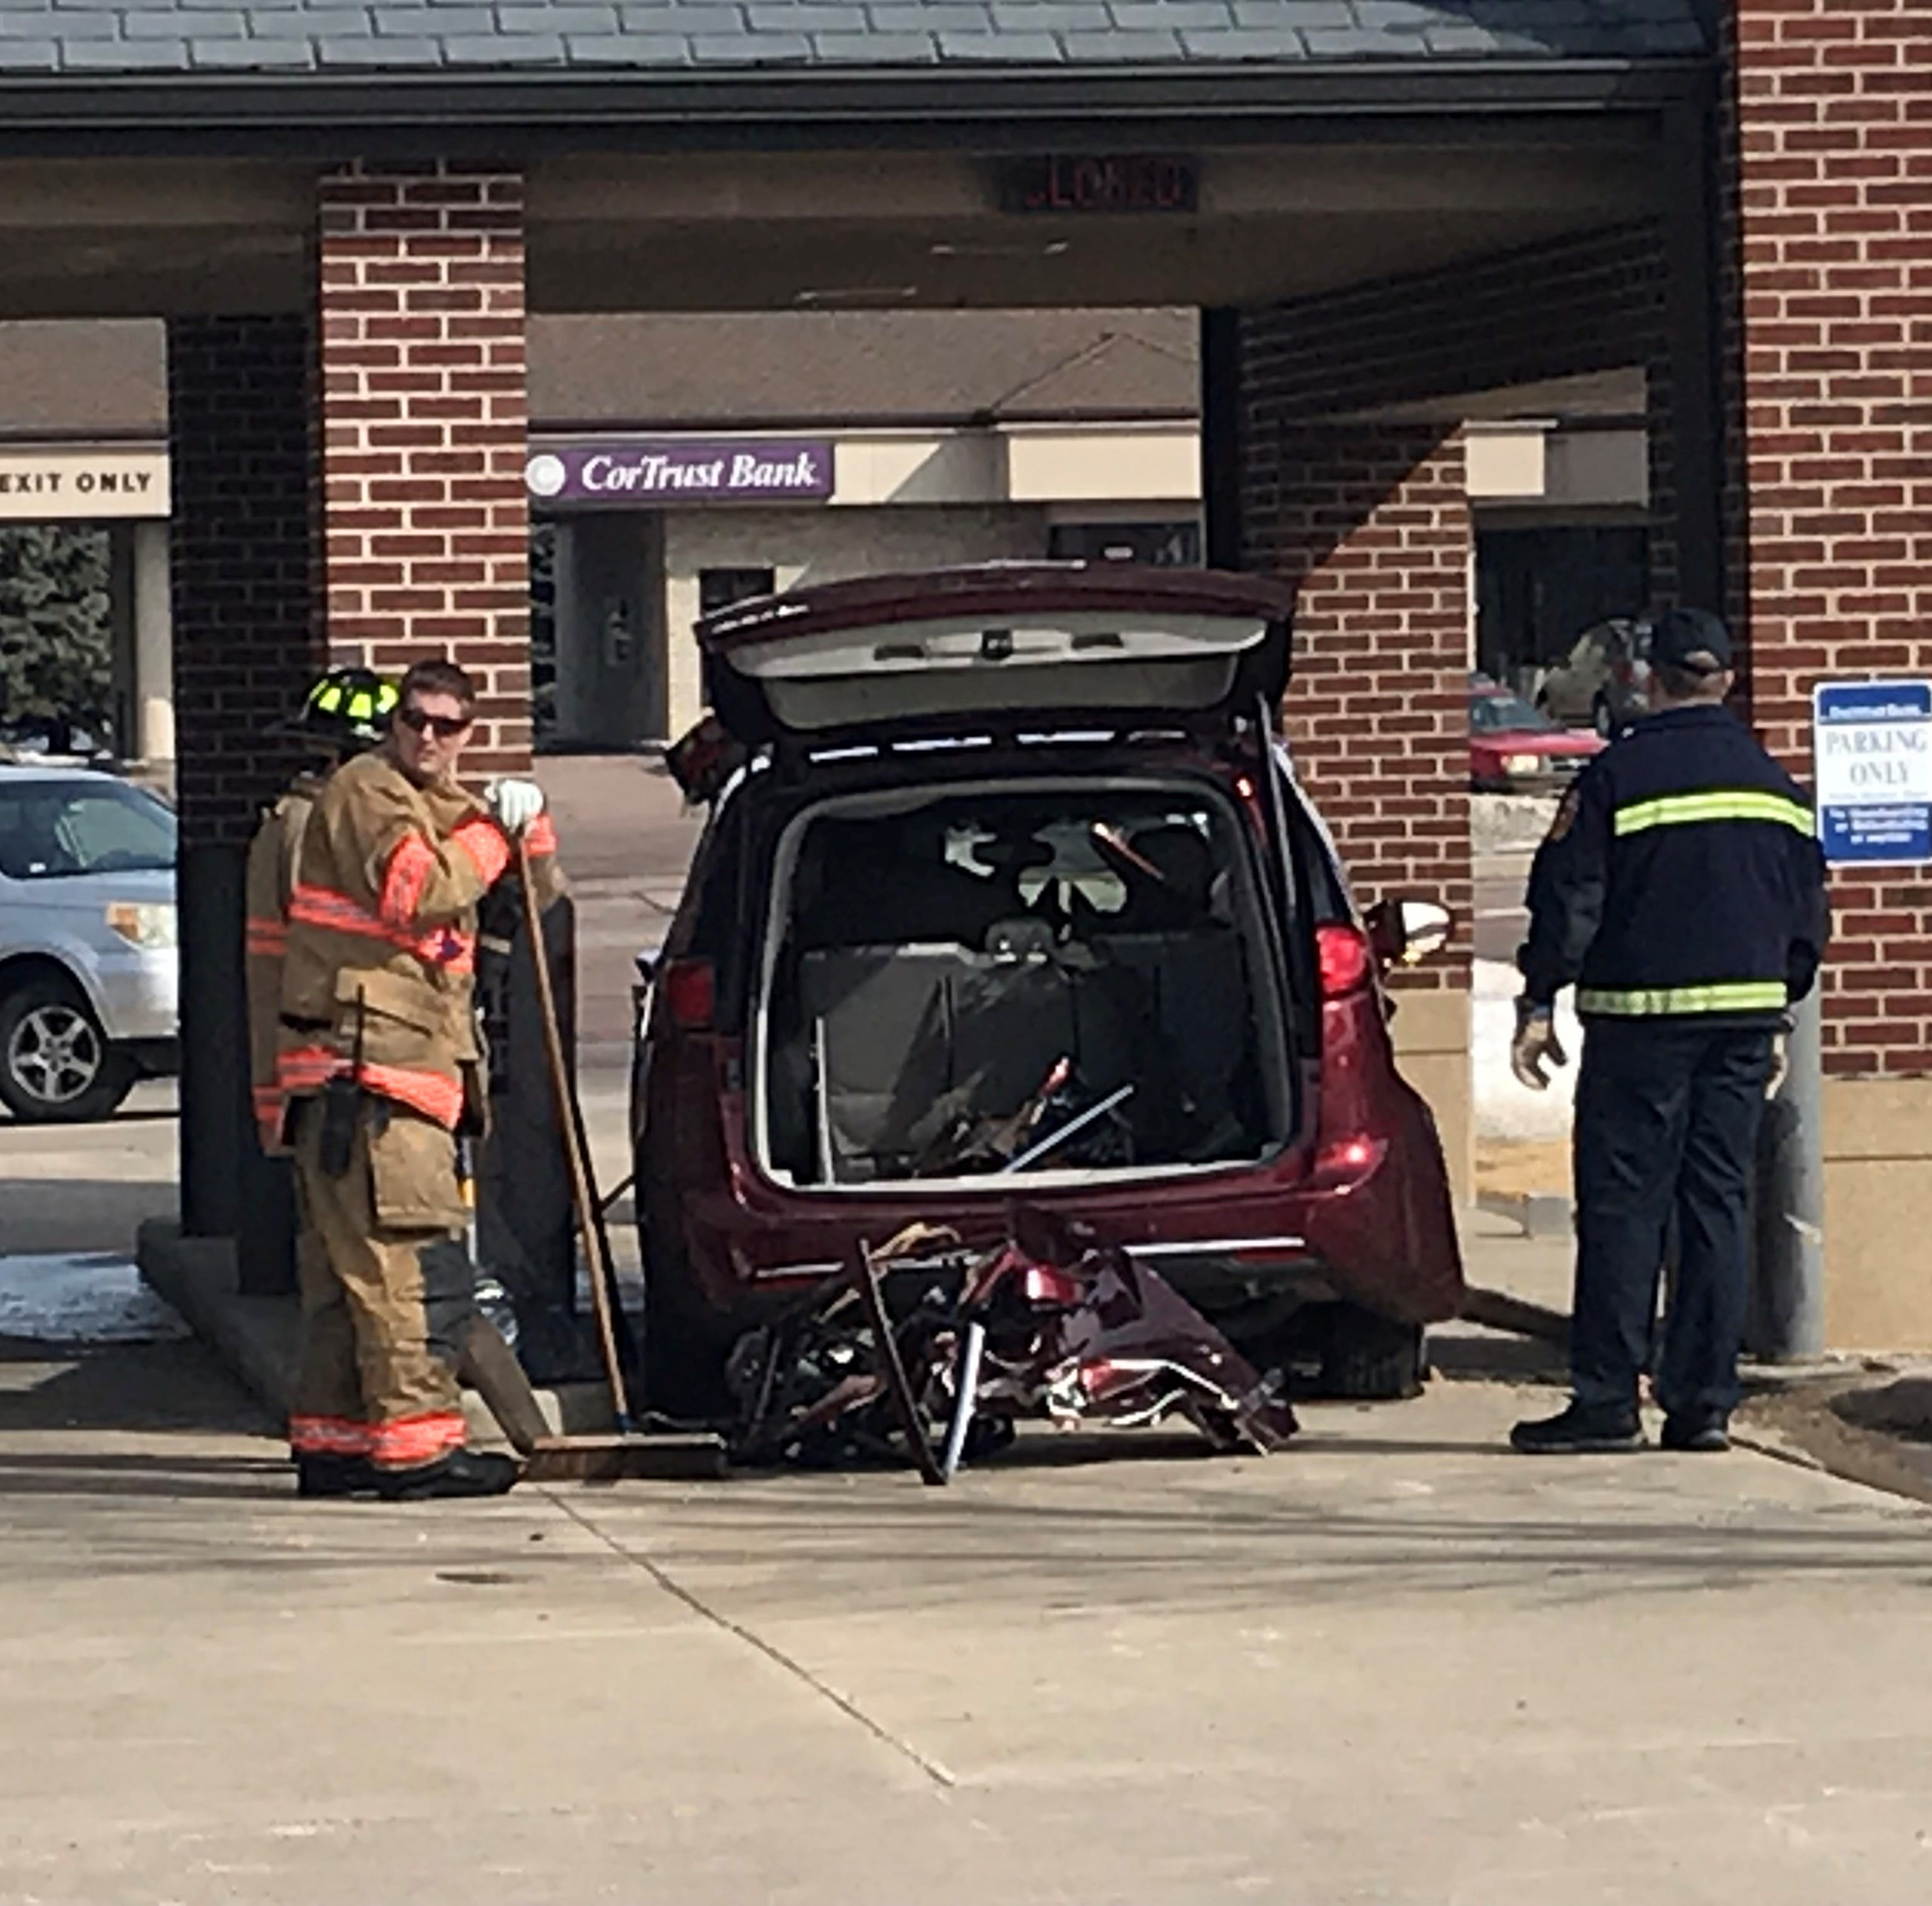 Police: No charges expected in Monday morning bank crash